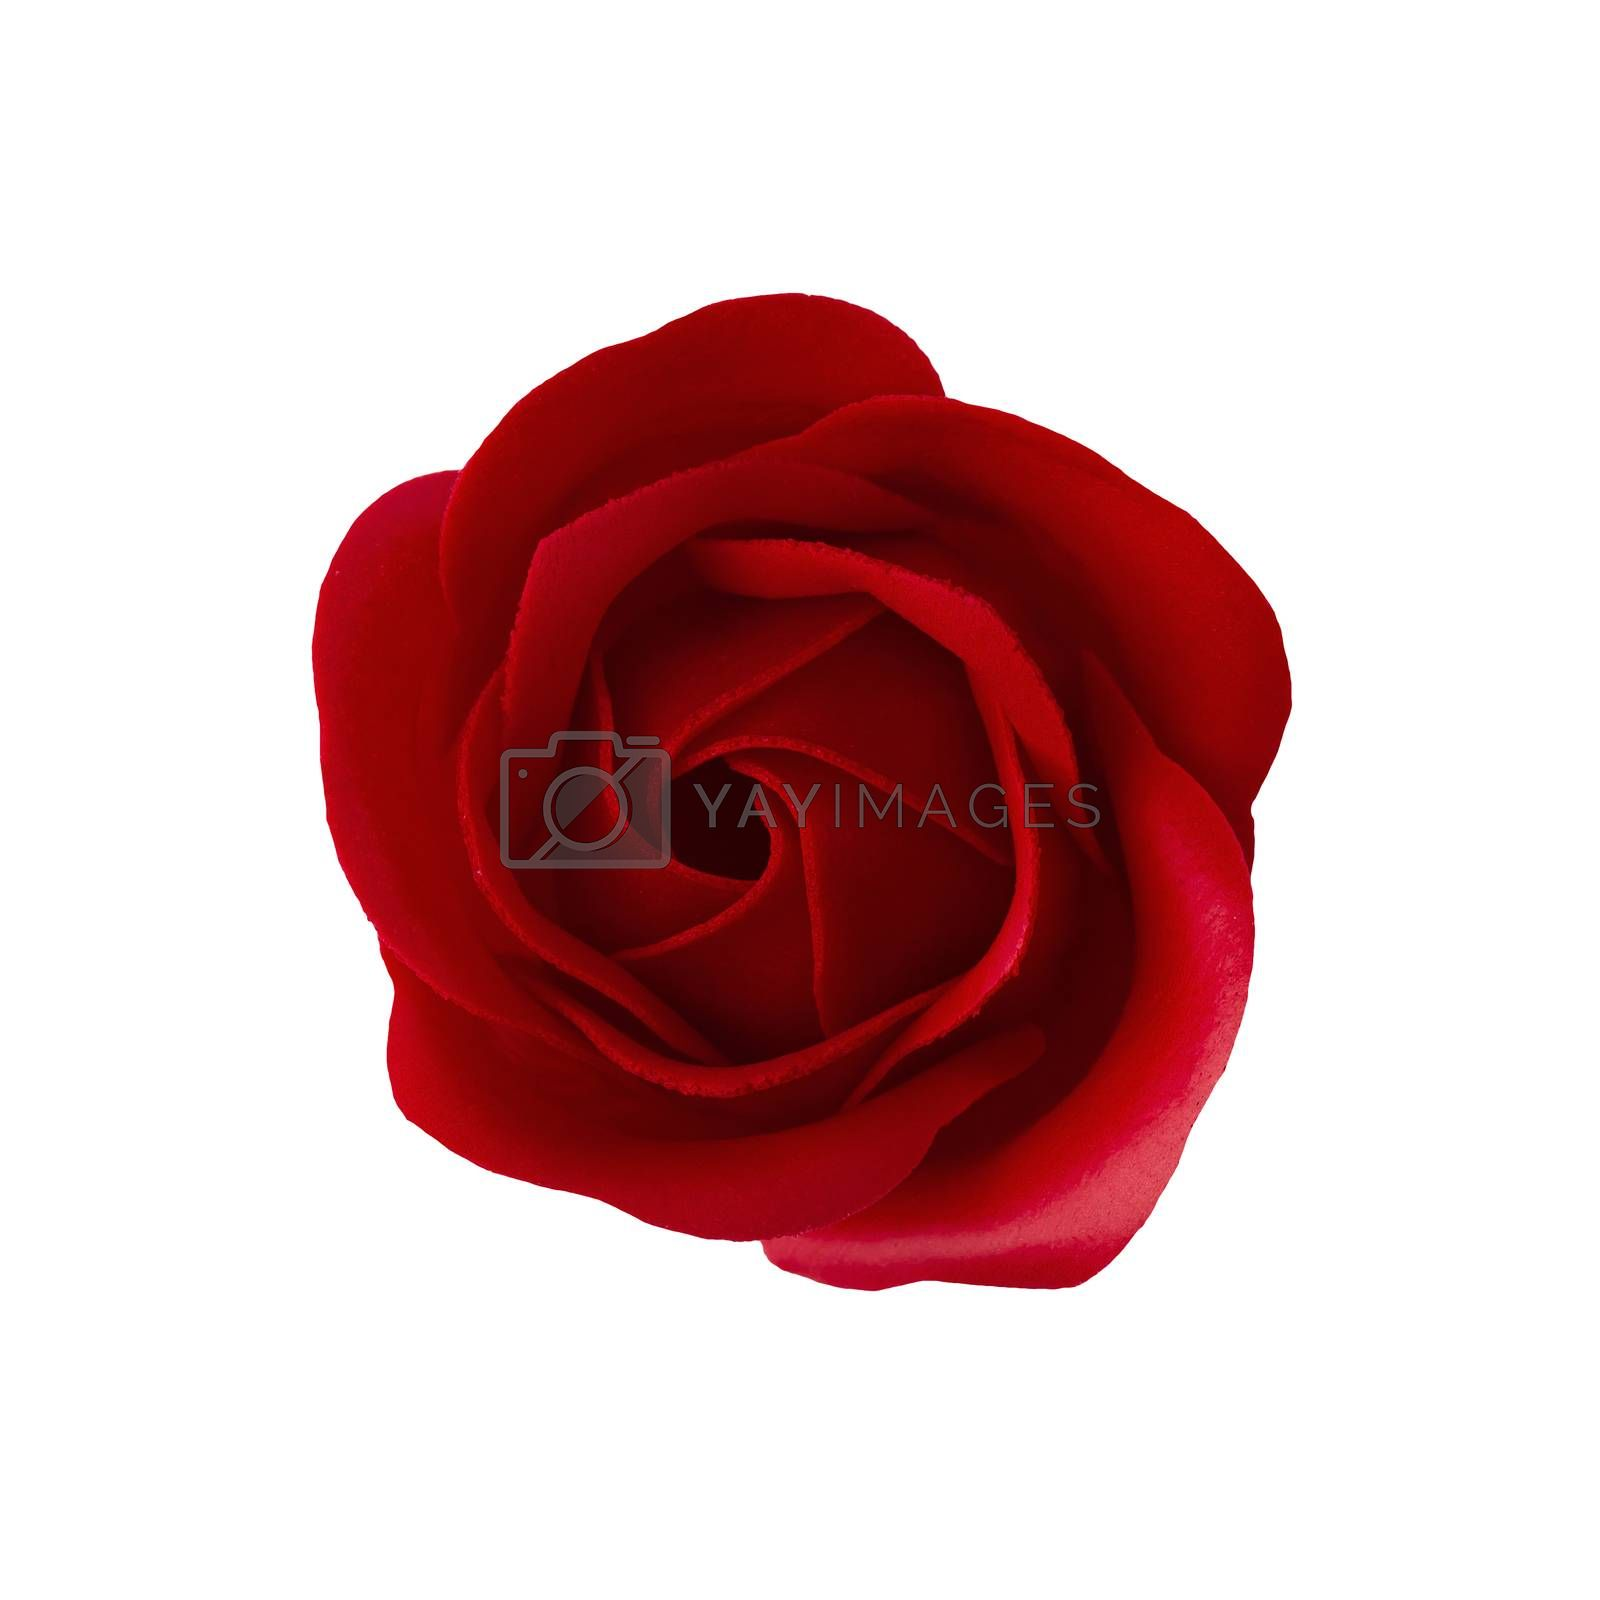 Red rose blossom isolated on white background. Top View.